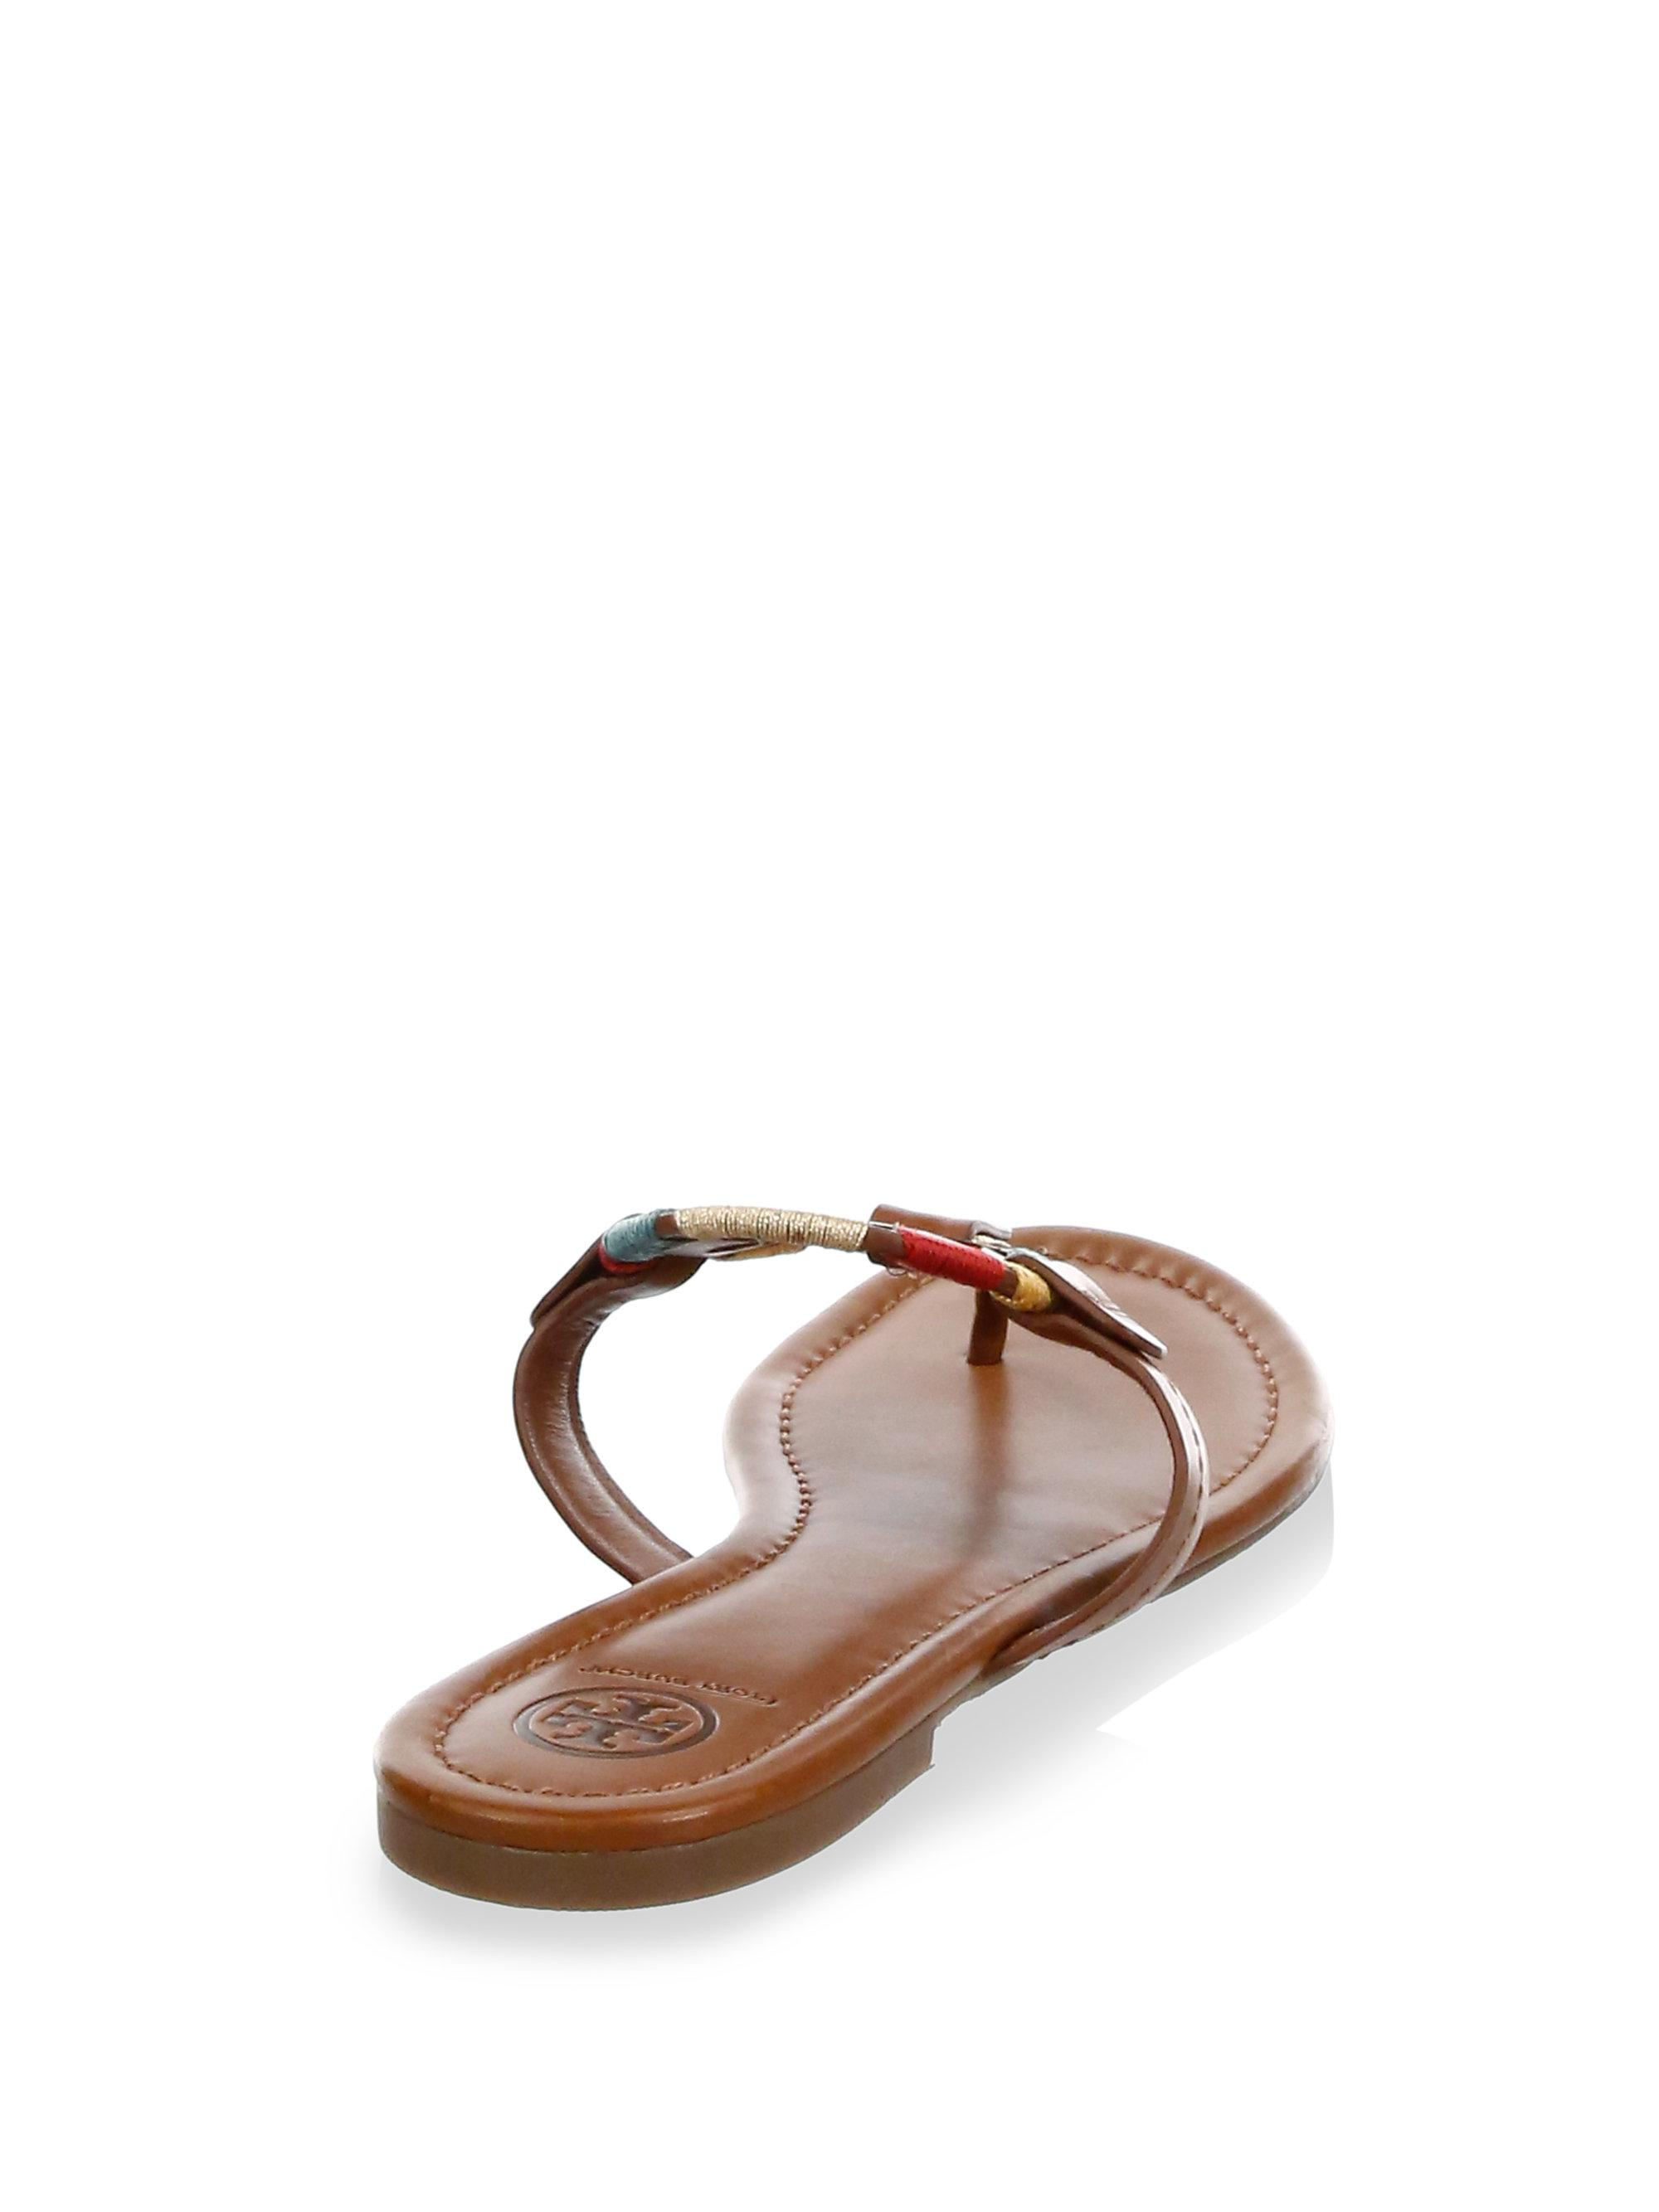 088773b3362da Lyst - Tory Burch Miller Embroidered Thong Sandals in Brown